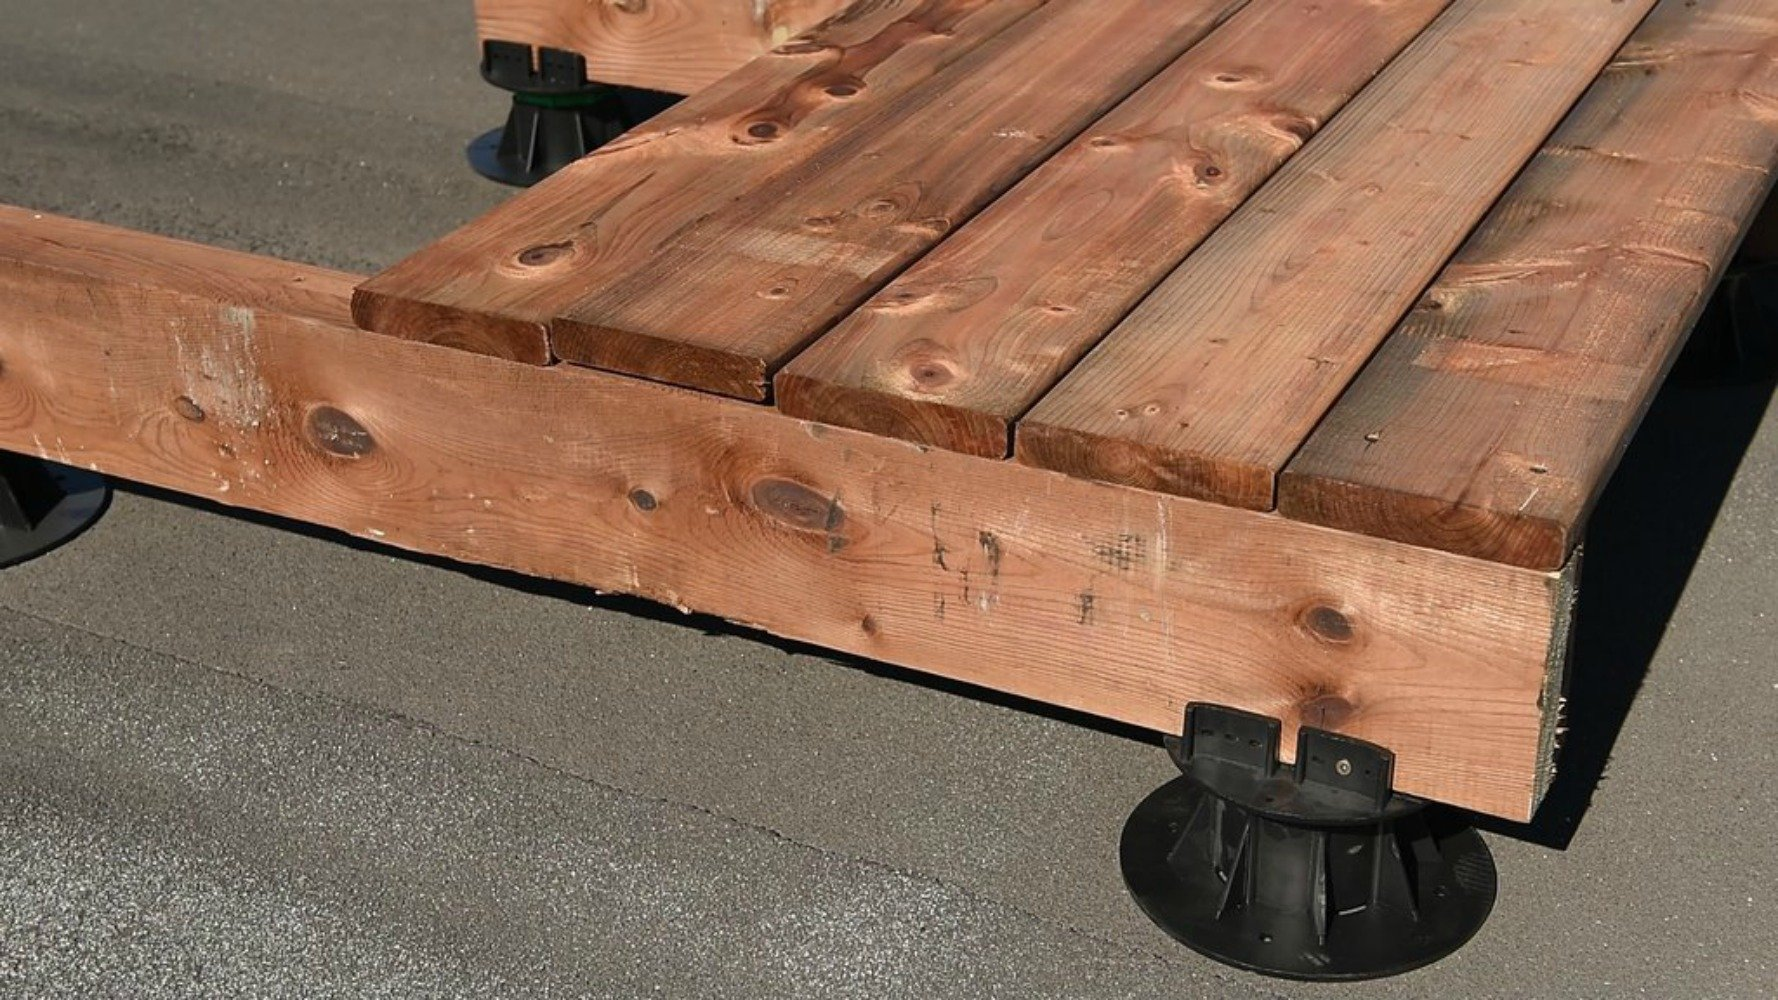 DTG-S4 PAVERS and/or LUMBER JOIST Adjustable Pedestal Support (Pack of 8) by Deck TO GO (Image #6)